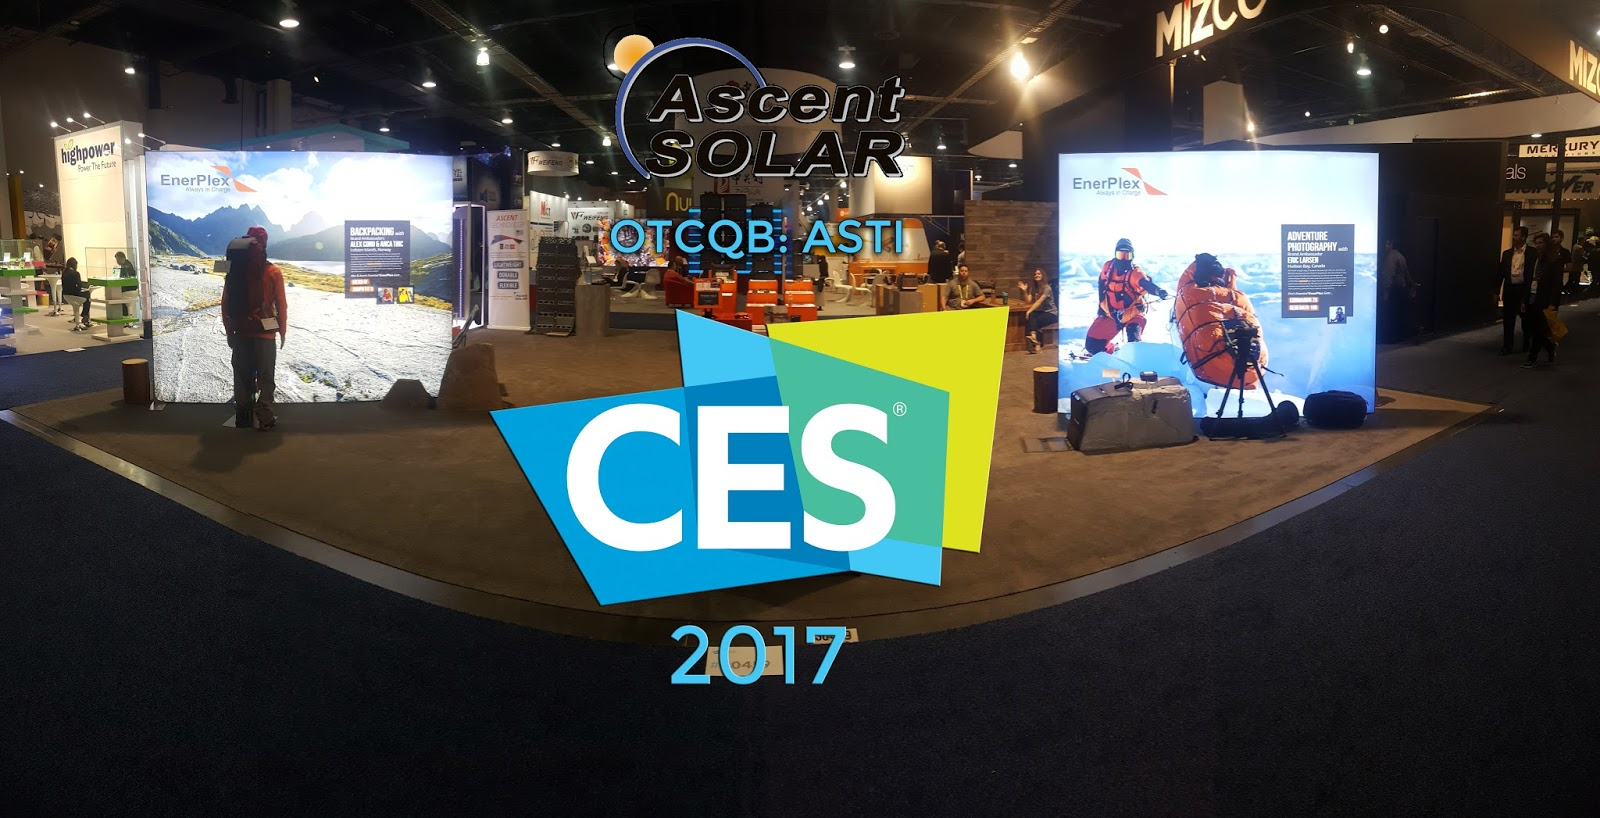 First solar stock symbol gallery symbol and sign ideas ces 2017 proves to be a success for ascent solar technologies ces 2017 proves to be buycottarizona Choice Image